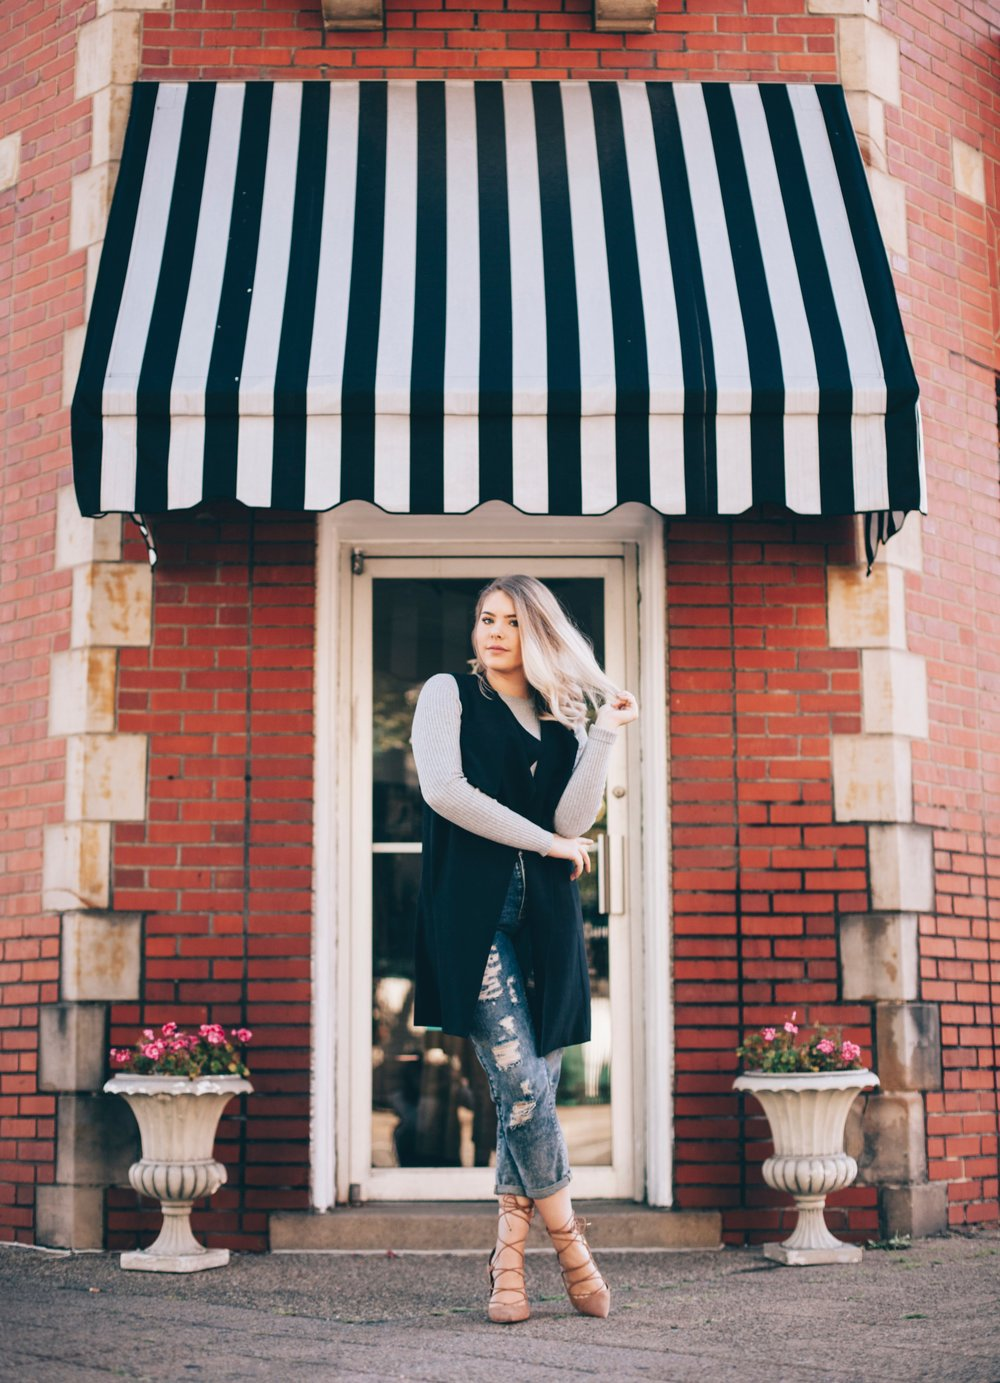 """I am just in love with her photography style"" - Kristin is AMAZING. She did my senior pictures and she brought all of my ideas to life. I am just in love with her photography style. I can not recommend her enough.- Taylor, Carnegie PA"